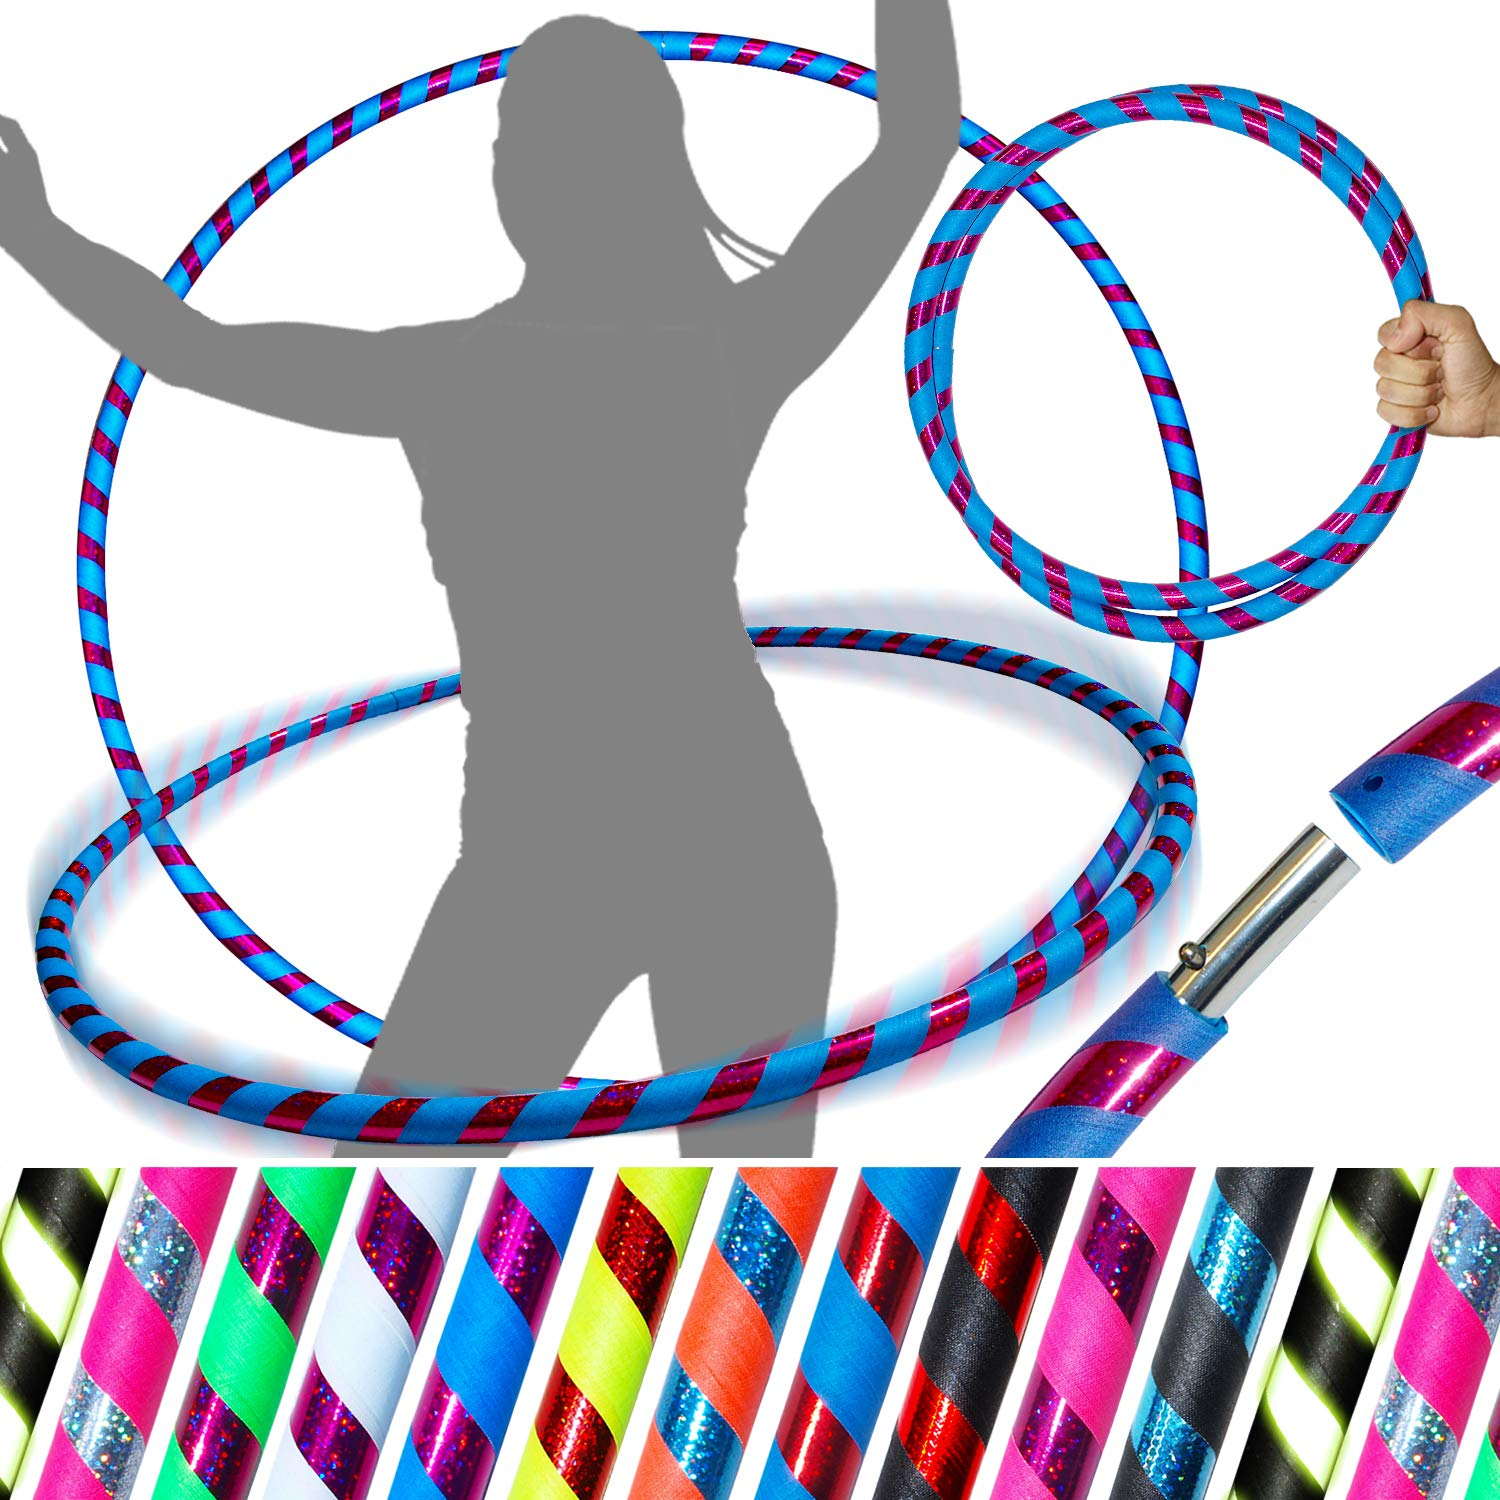 PRO Hula Hoops (Ultra-Grip/Glitter Deco) Weighted TRAVEL Hula Hoop (100cm/39') Hula Hoops For Exercise, Dance & Fitness! (640g) NO Instructions Needed - Same Day Dispatch.! (UV Blue / Purple Glitter)